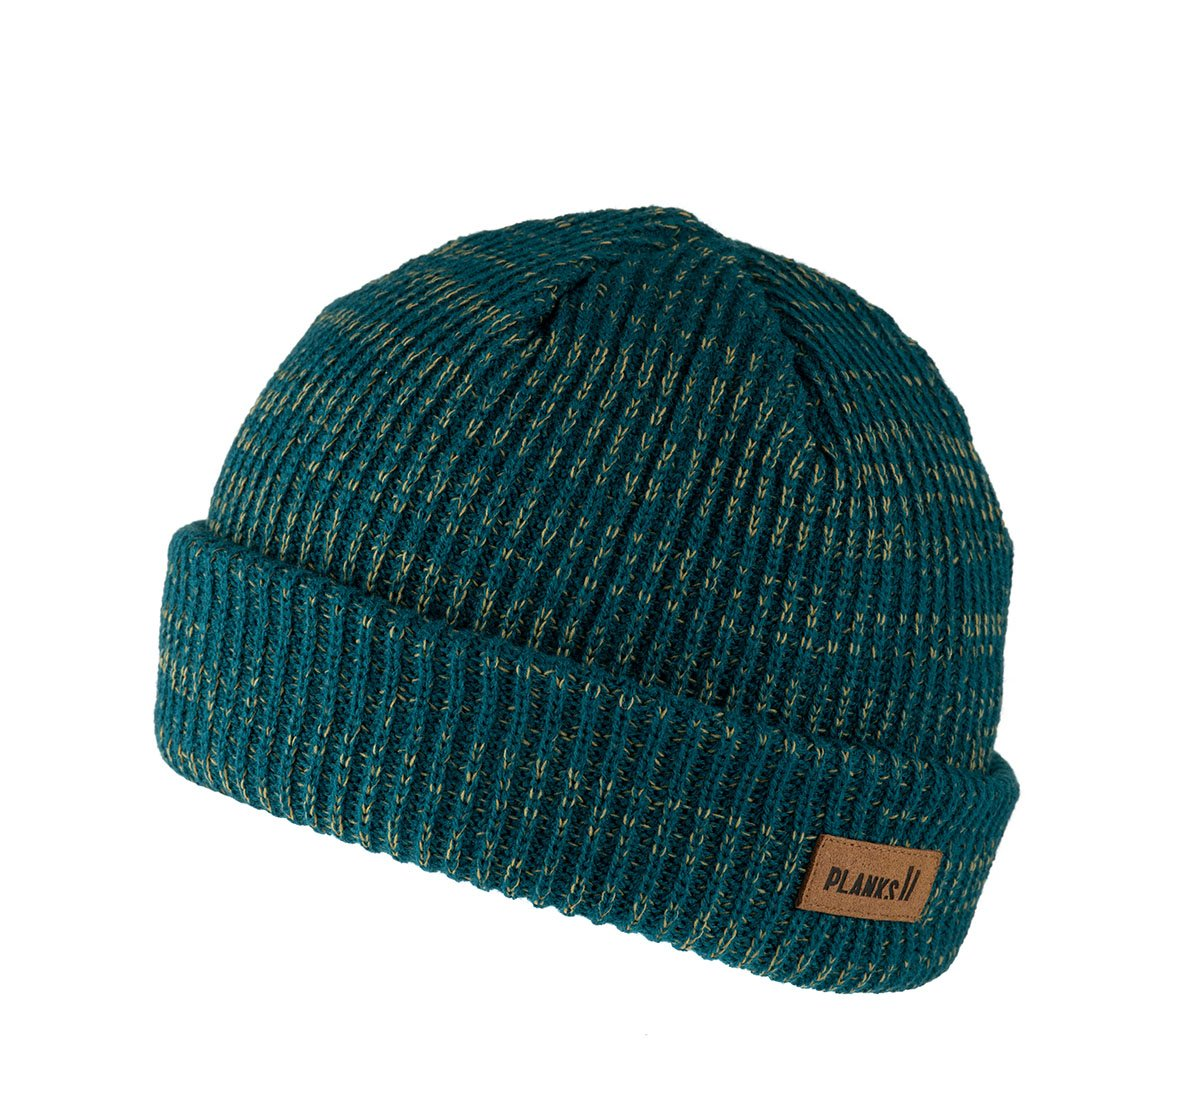 Planks Team Beanie 2020 | Planks Clothing